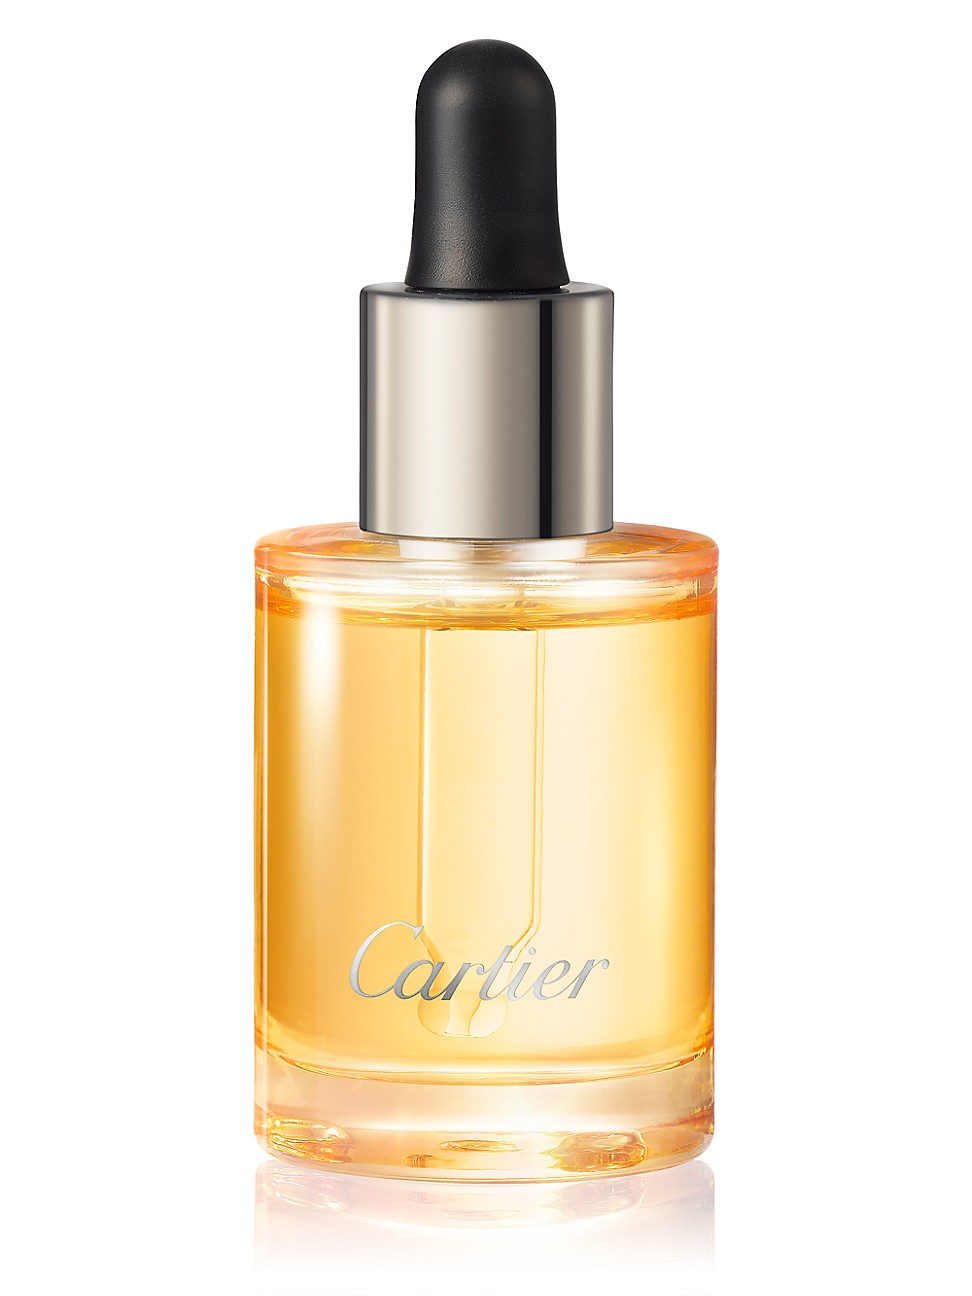 Reach for new horizons with L\\\'Envol de Cartier fragrance for men. The scent of Caribbean guayacan wood is enhanced with notes of honey and musk for an elixir that will let your spirit soar. 0.9 fl. oz. Made in France. ABOUT THE BRAND Regarded as one of the most prestigious jewelry brands in the world, Cartier is known for exquisite craftsmanship and timeless designs. Founded in Paris in 1847 by Louis-François Cartier, the iconic jewelry house continues to create sought-after pieces like the cele